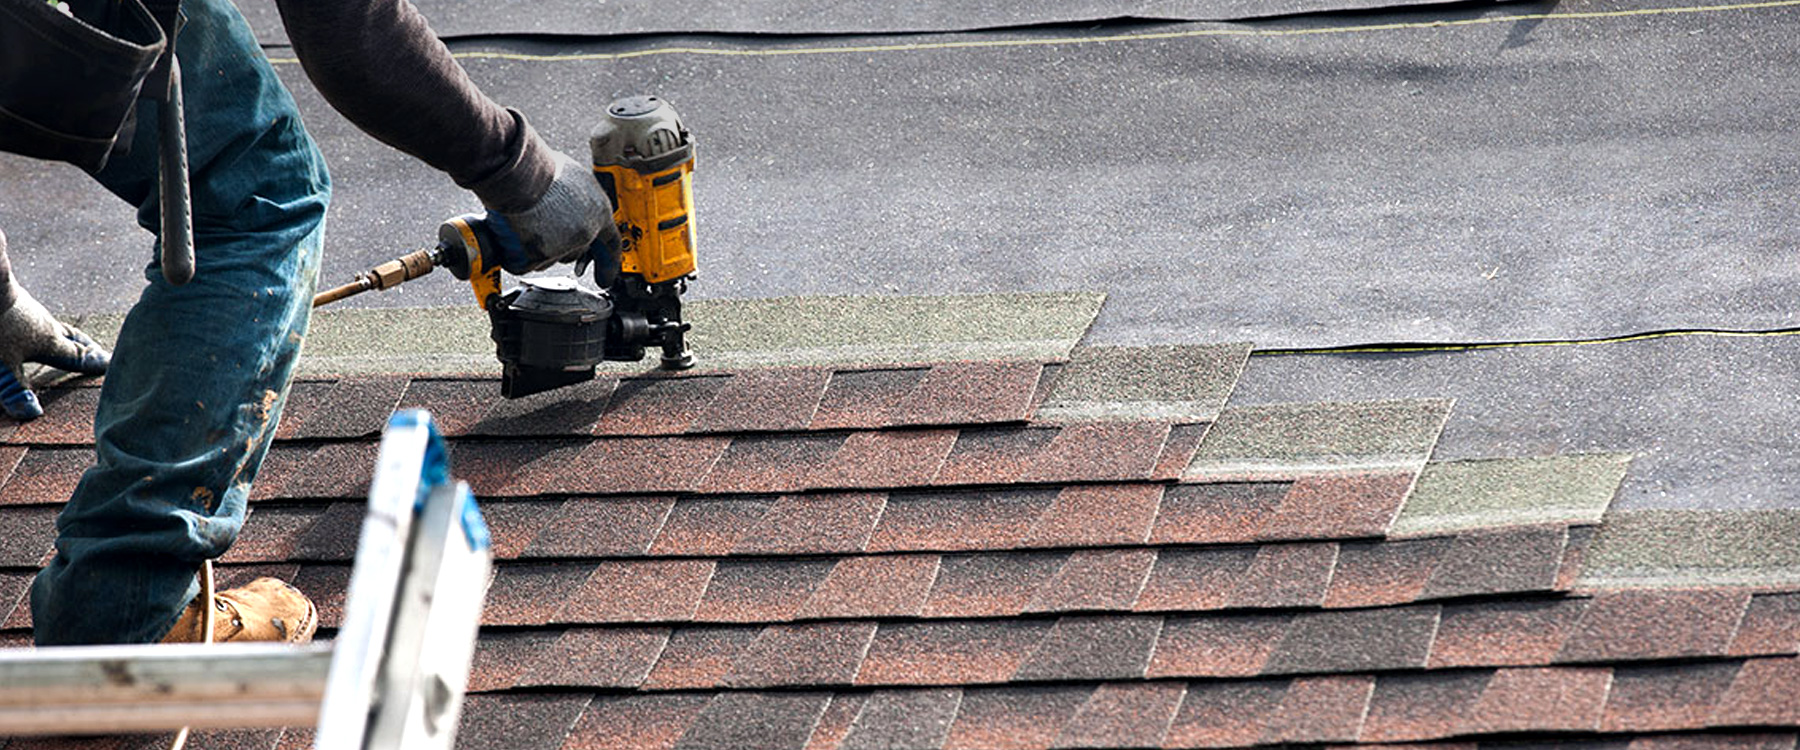 Searching For Roof Leak Repair Services